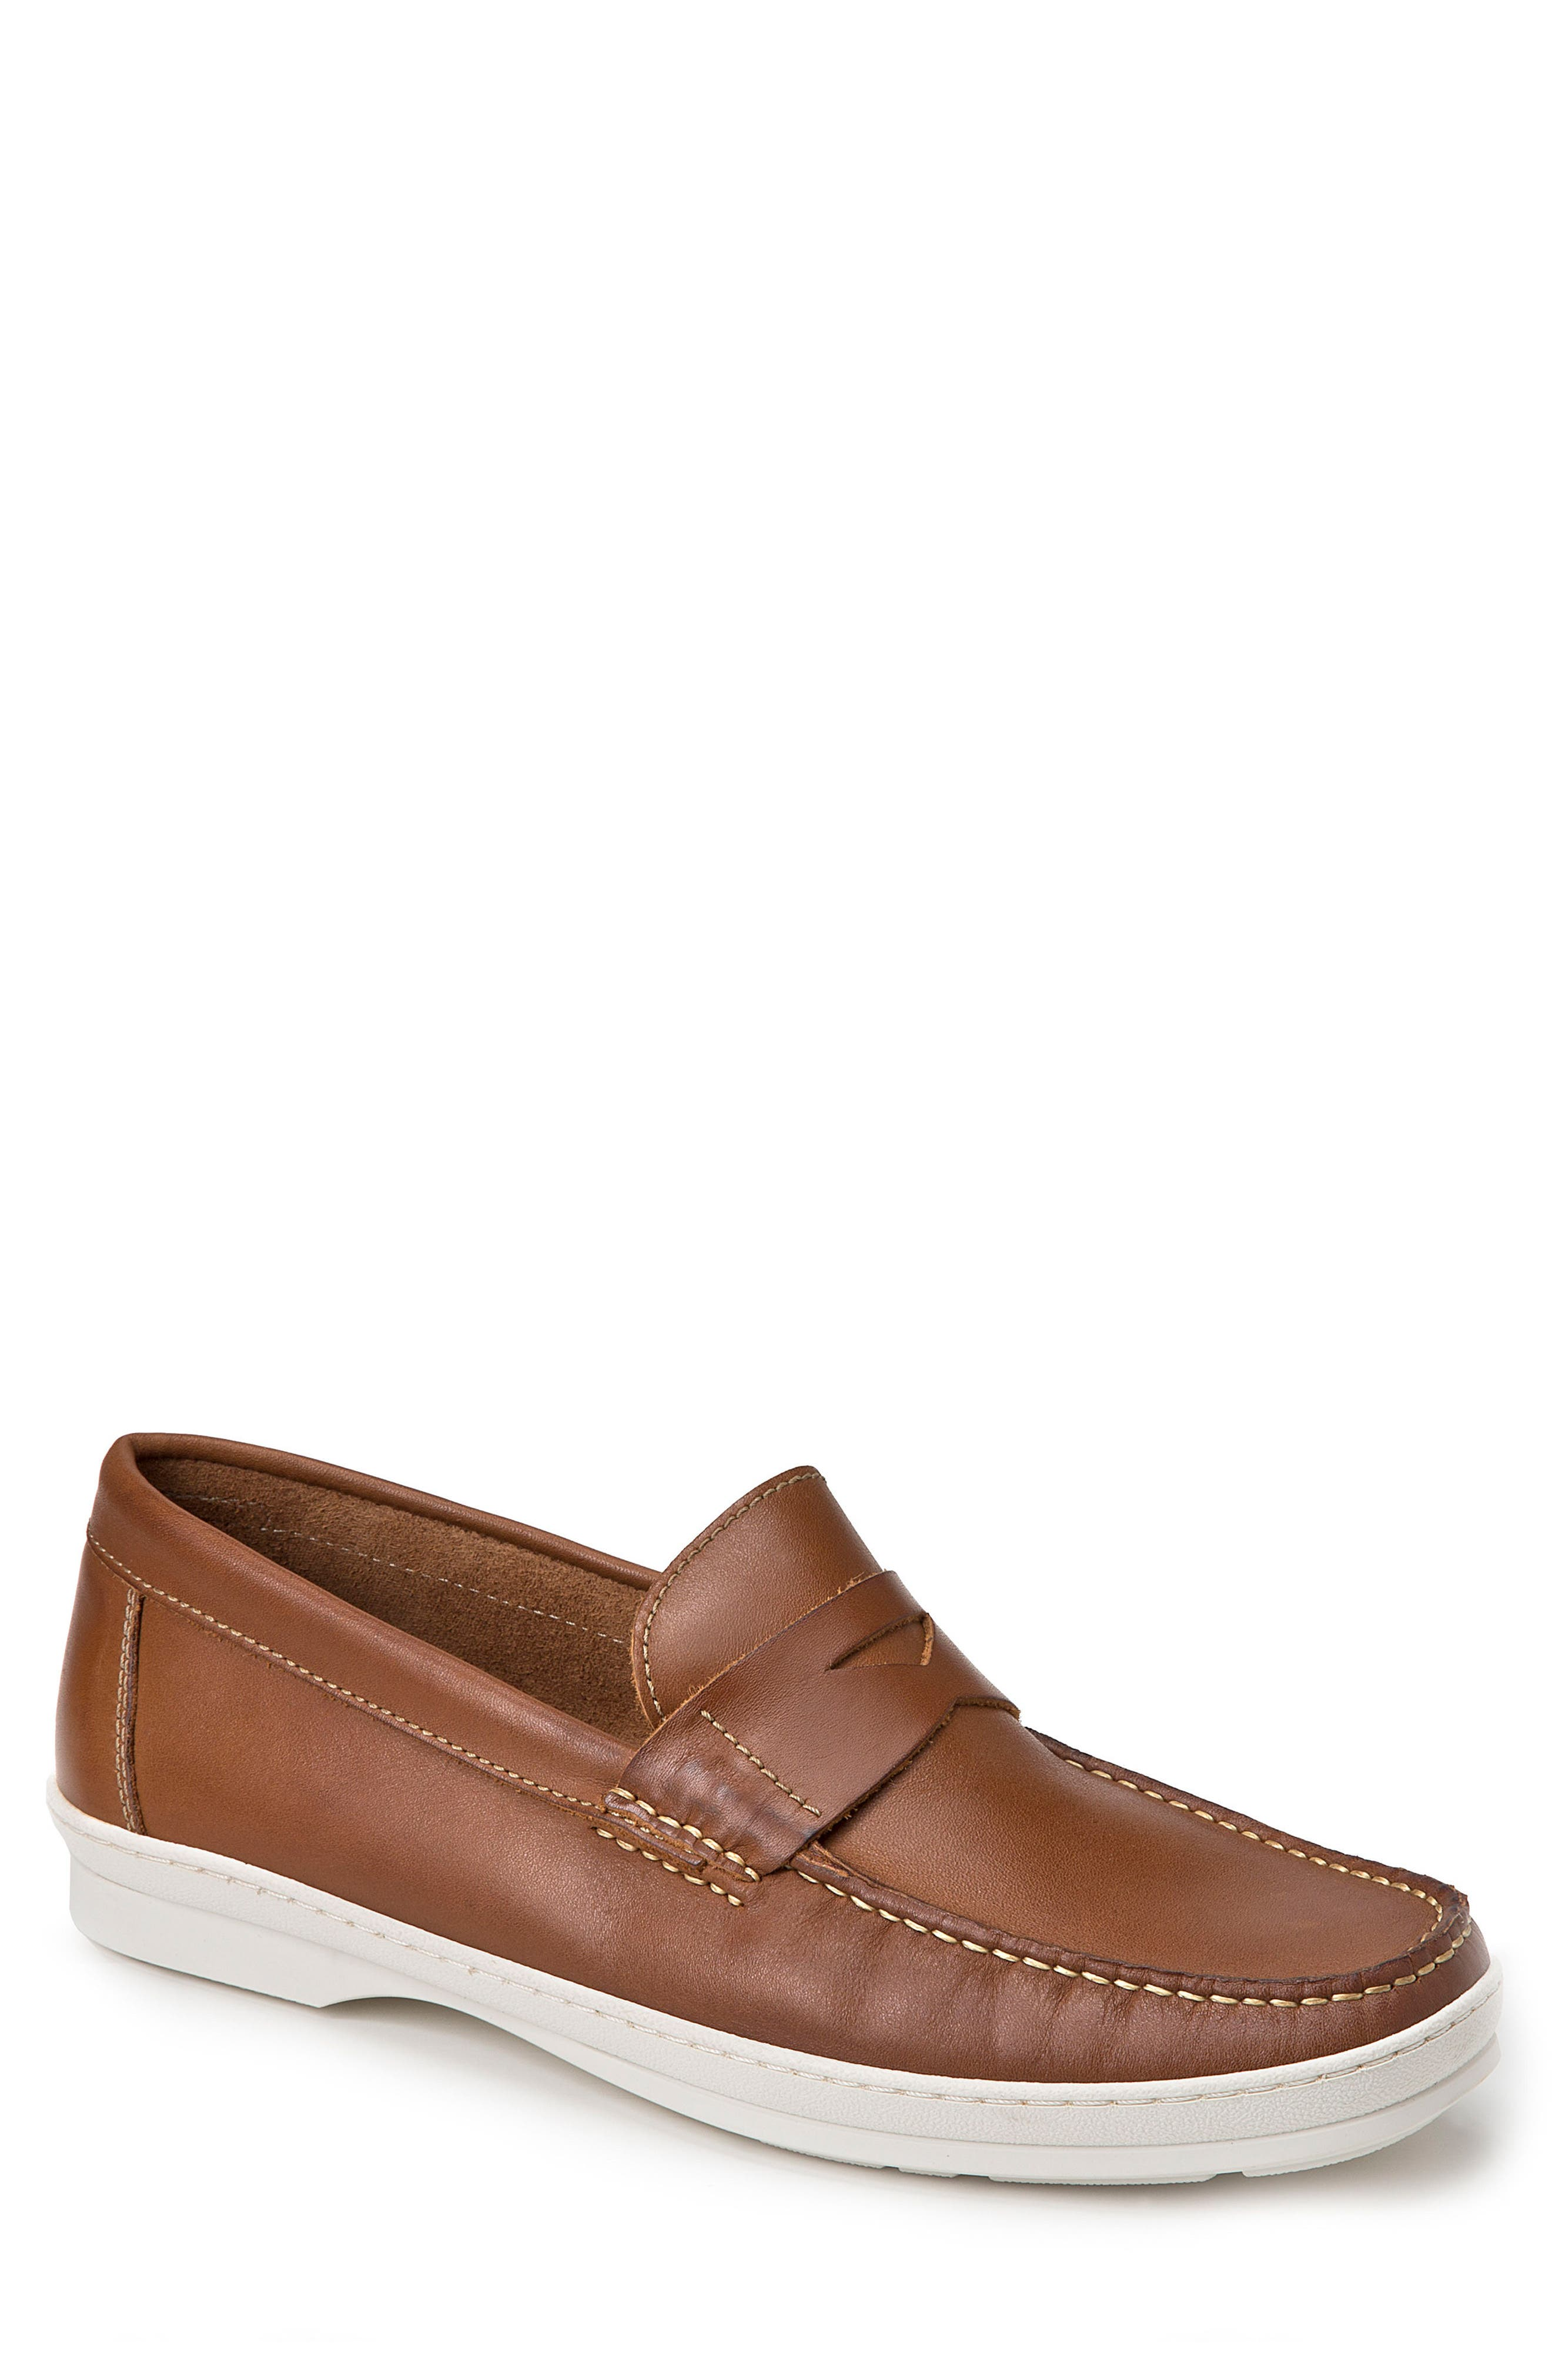 Simon Penny Loafer,                         Main,                         color, Tan Leather